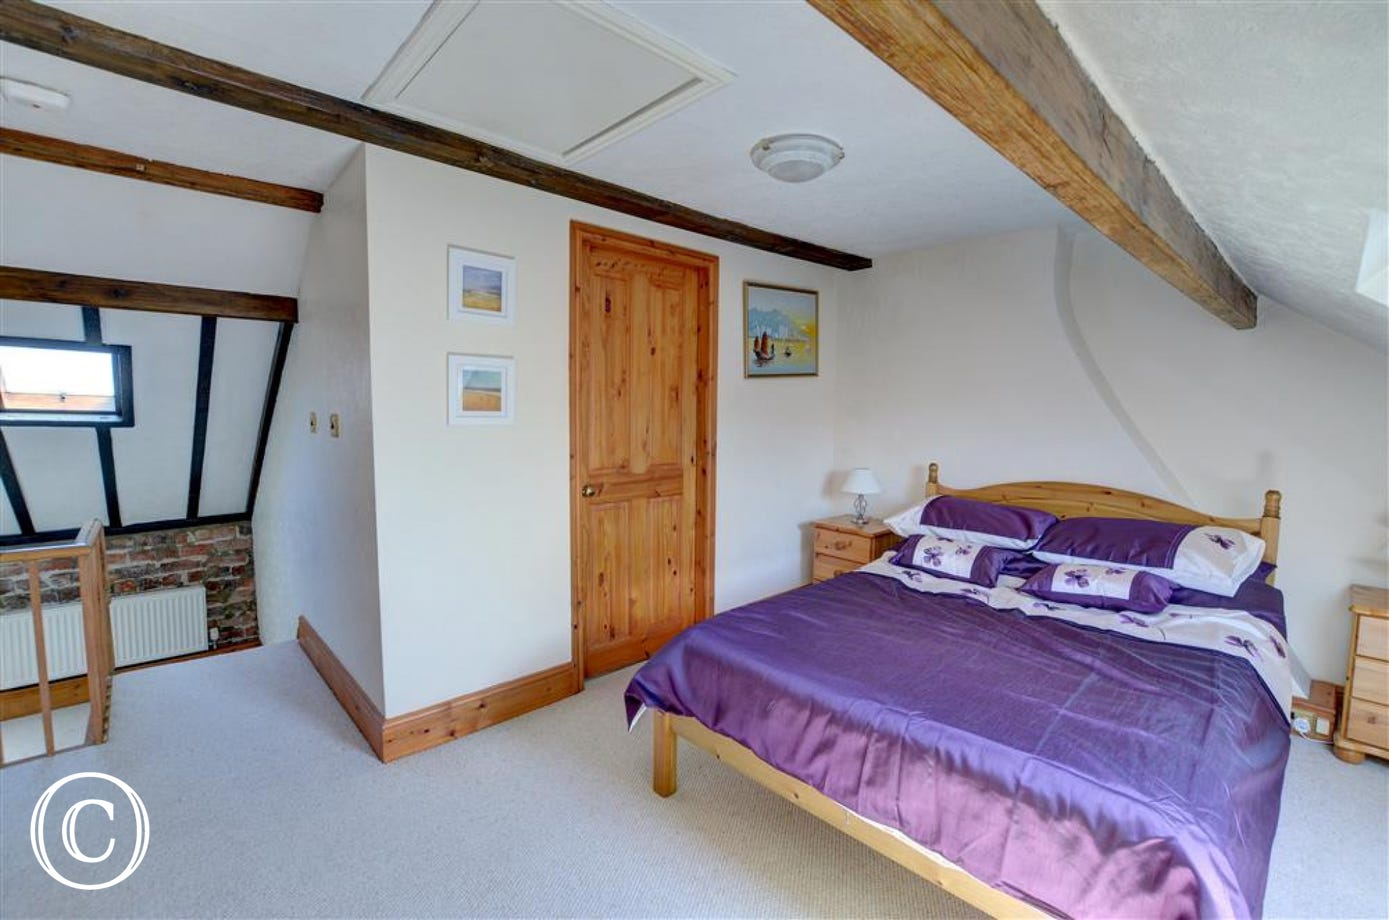 Main bedroom with double bed and en-suite.